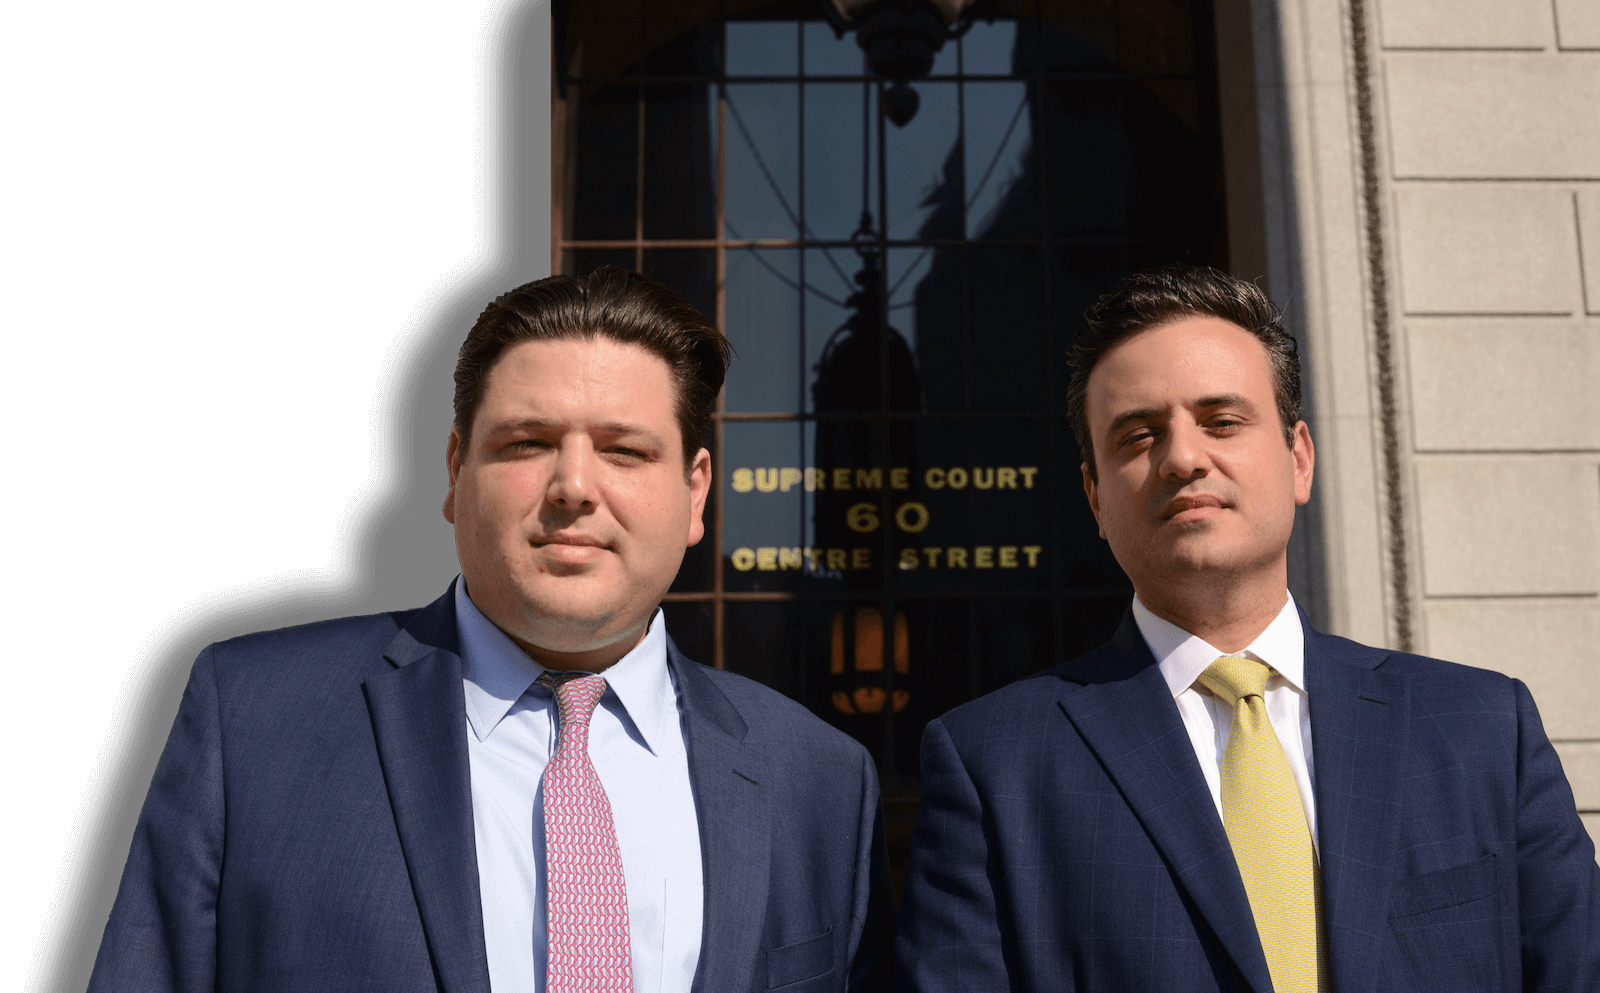 Richard Russo and Matthew Russo of Russo Law LLP